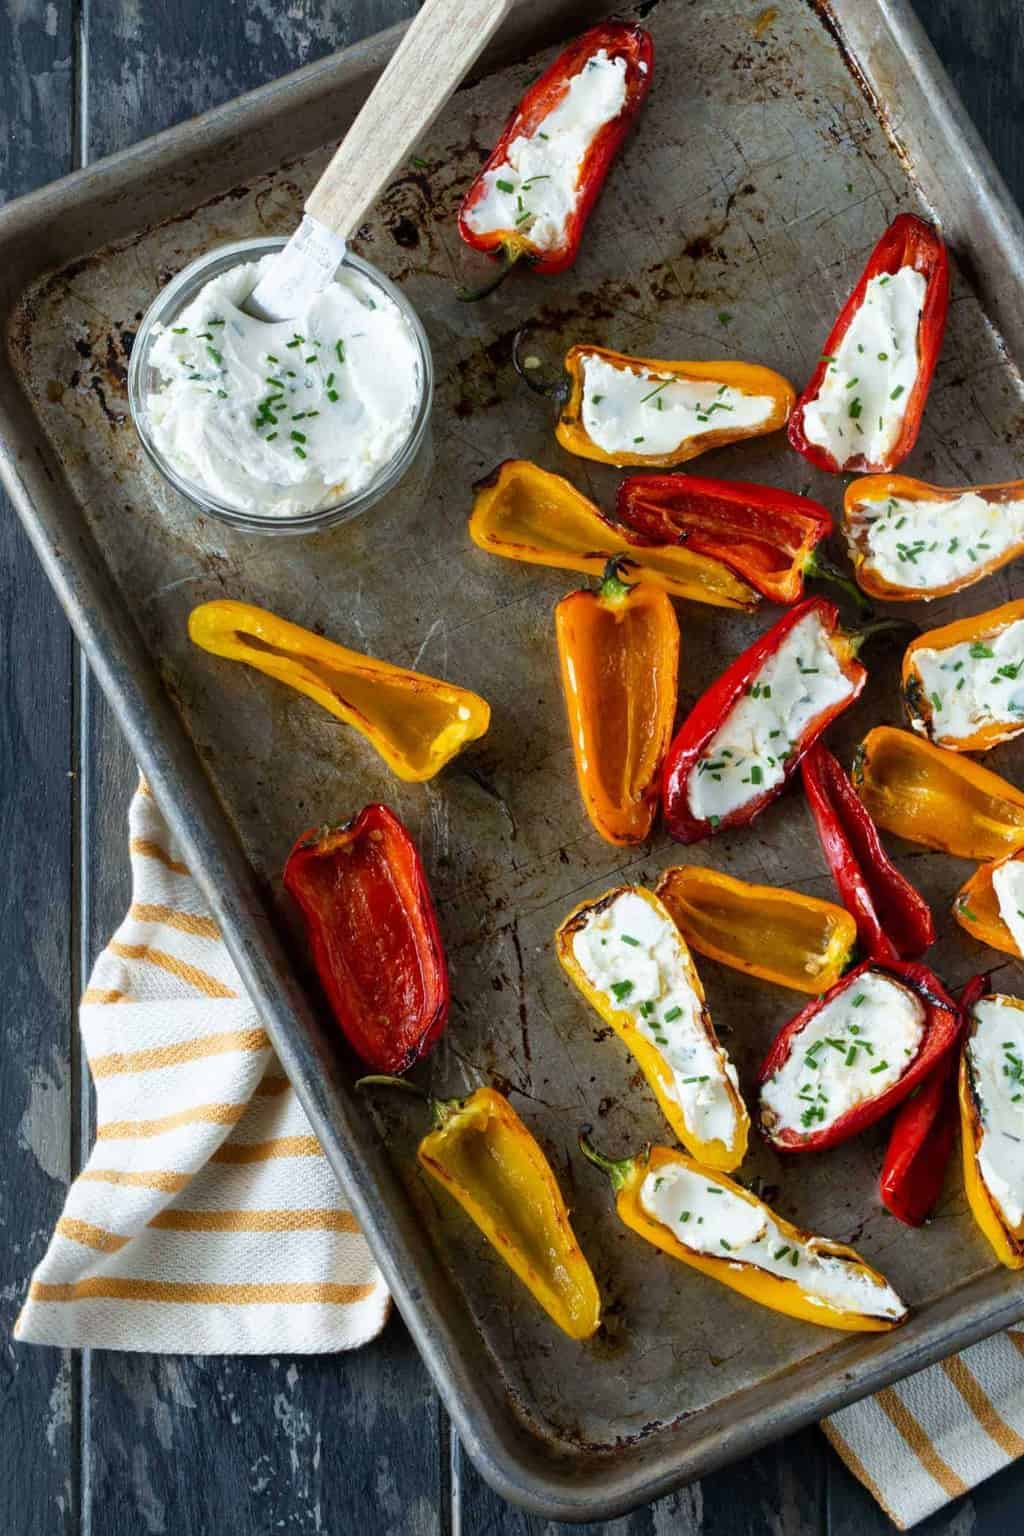 grilled peppers with goat cheese recipe on sheet pan with fresh herbs for garnish.